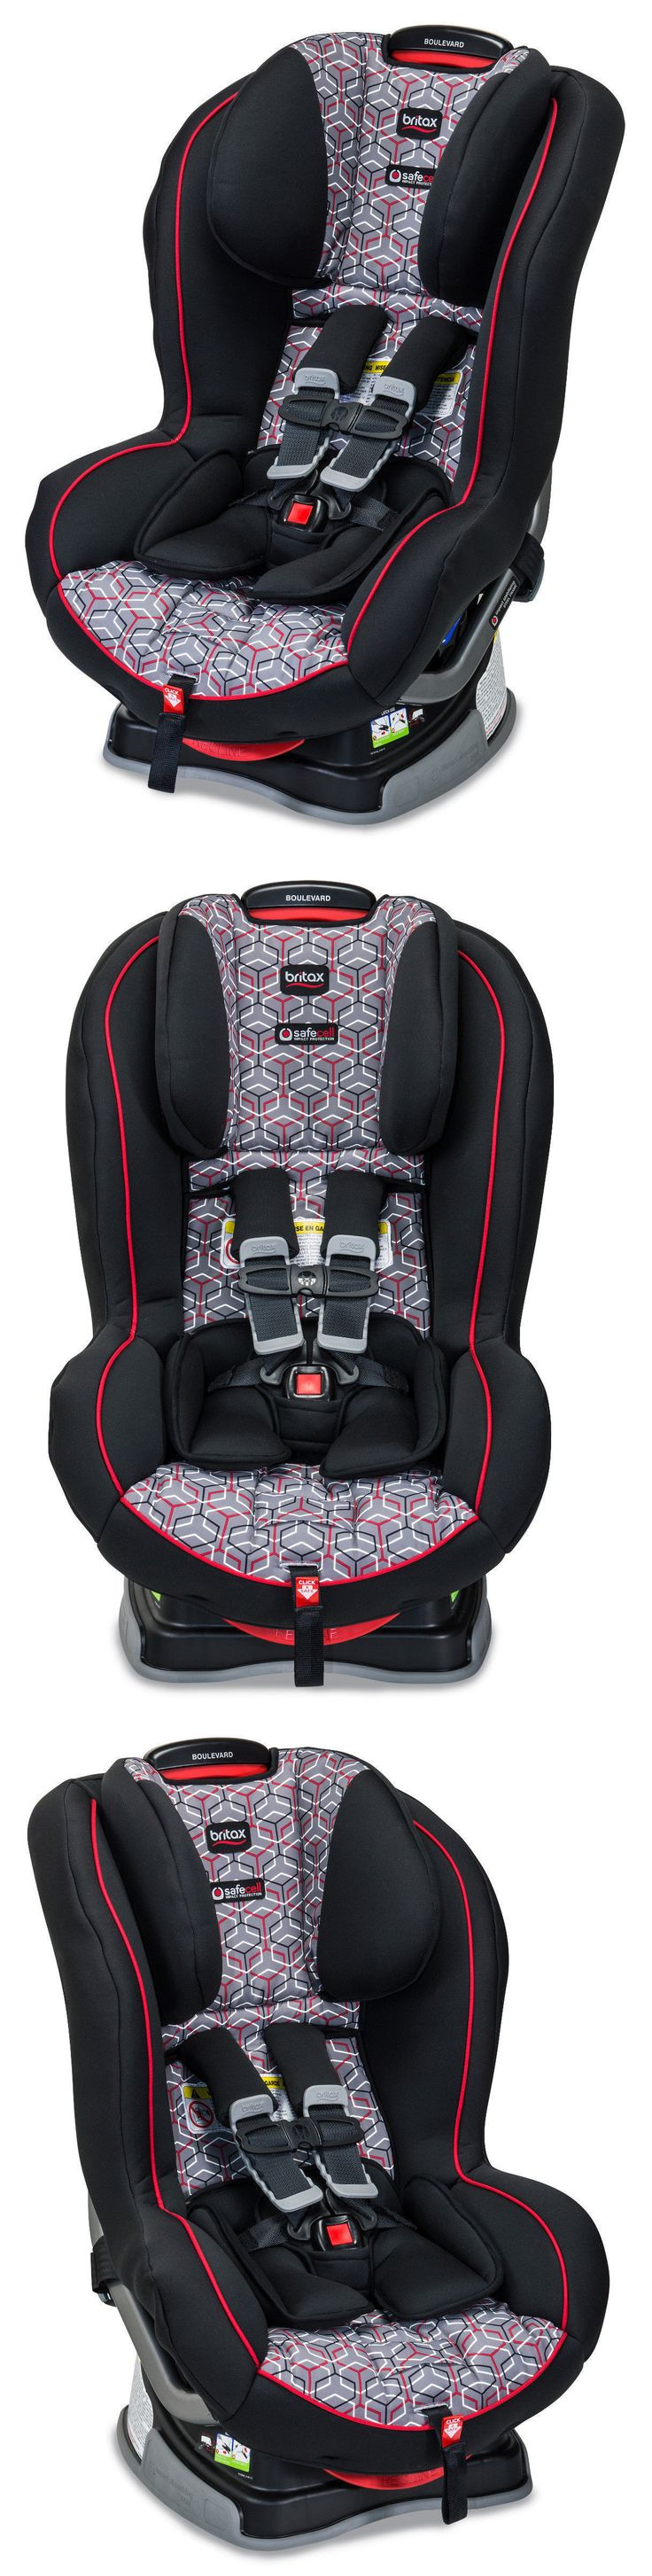 Convertible Car Seat 5-40lbs 66695: New Britax Frontier Clicktight Combination Harness-2-Booster Car Seat Baxter -> BUY IT NOW ONLY: $189.99 on eBay!